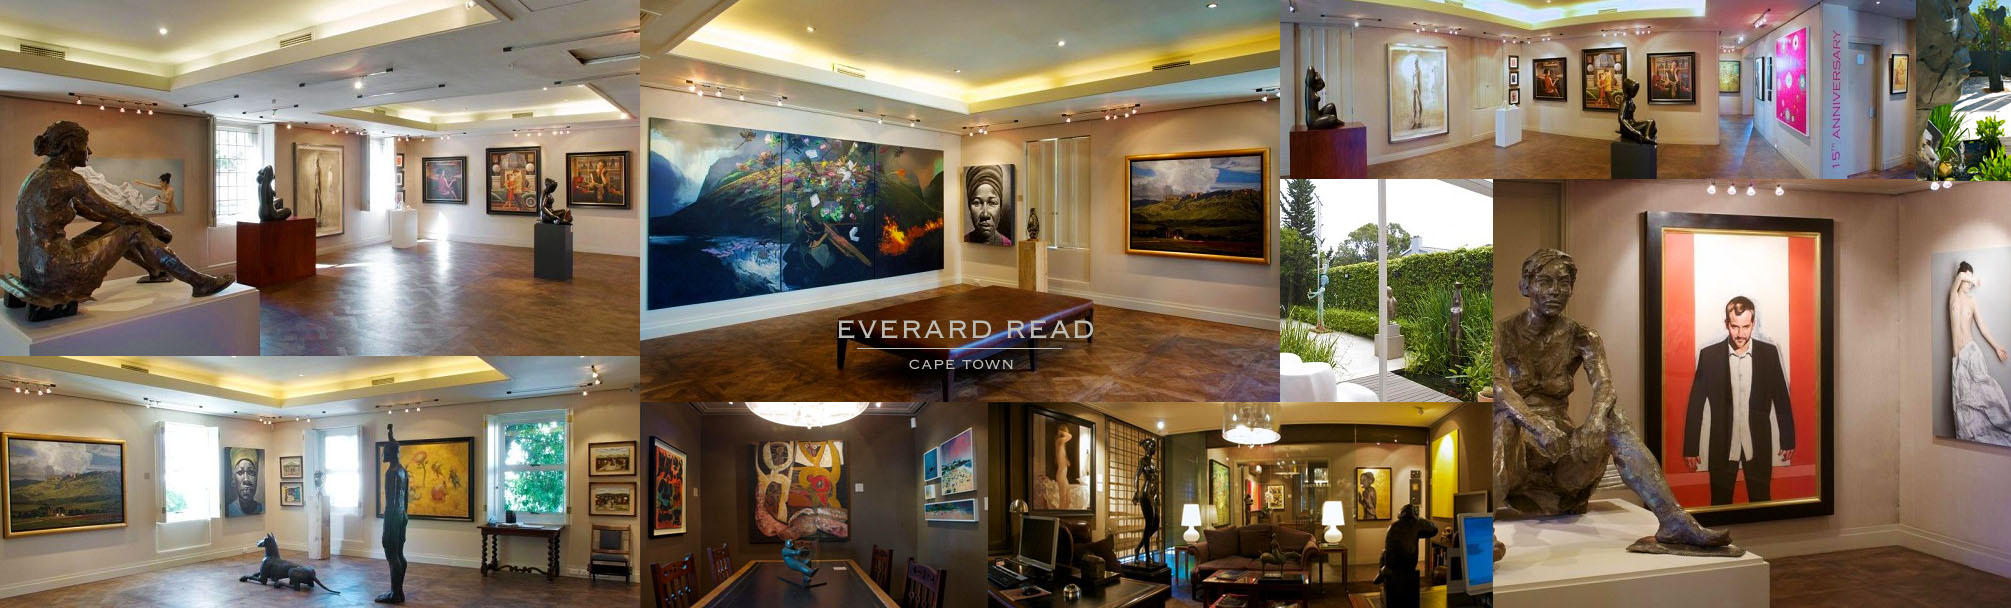 Everard Read Art Gallery on IntoCapeTown.com